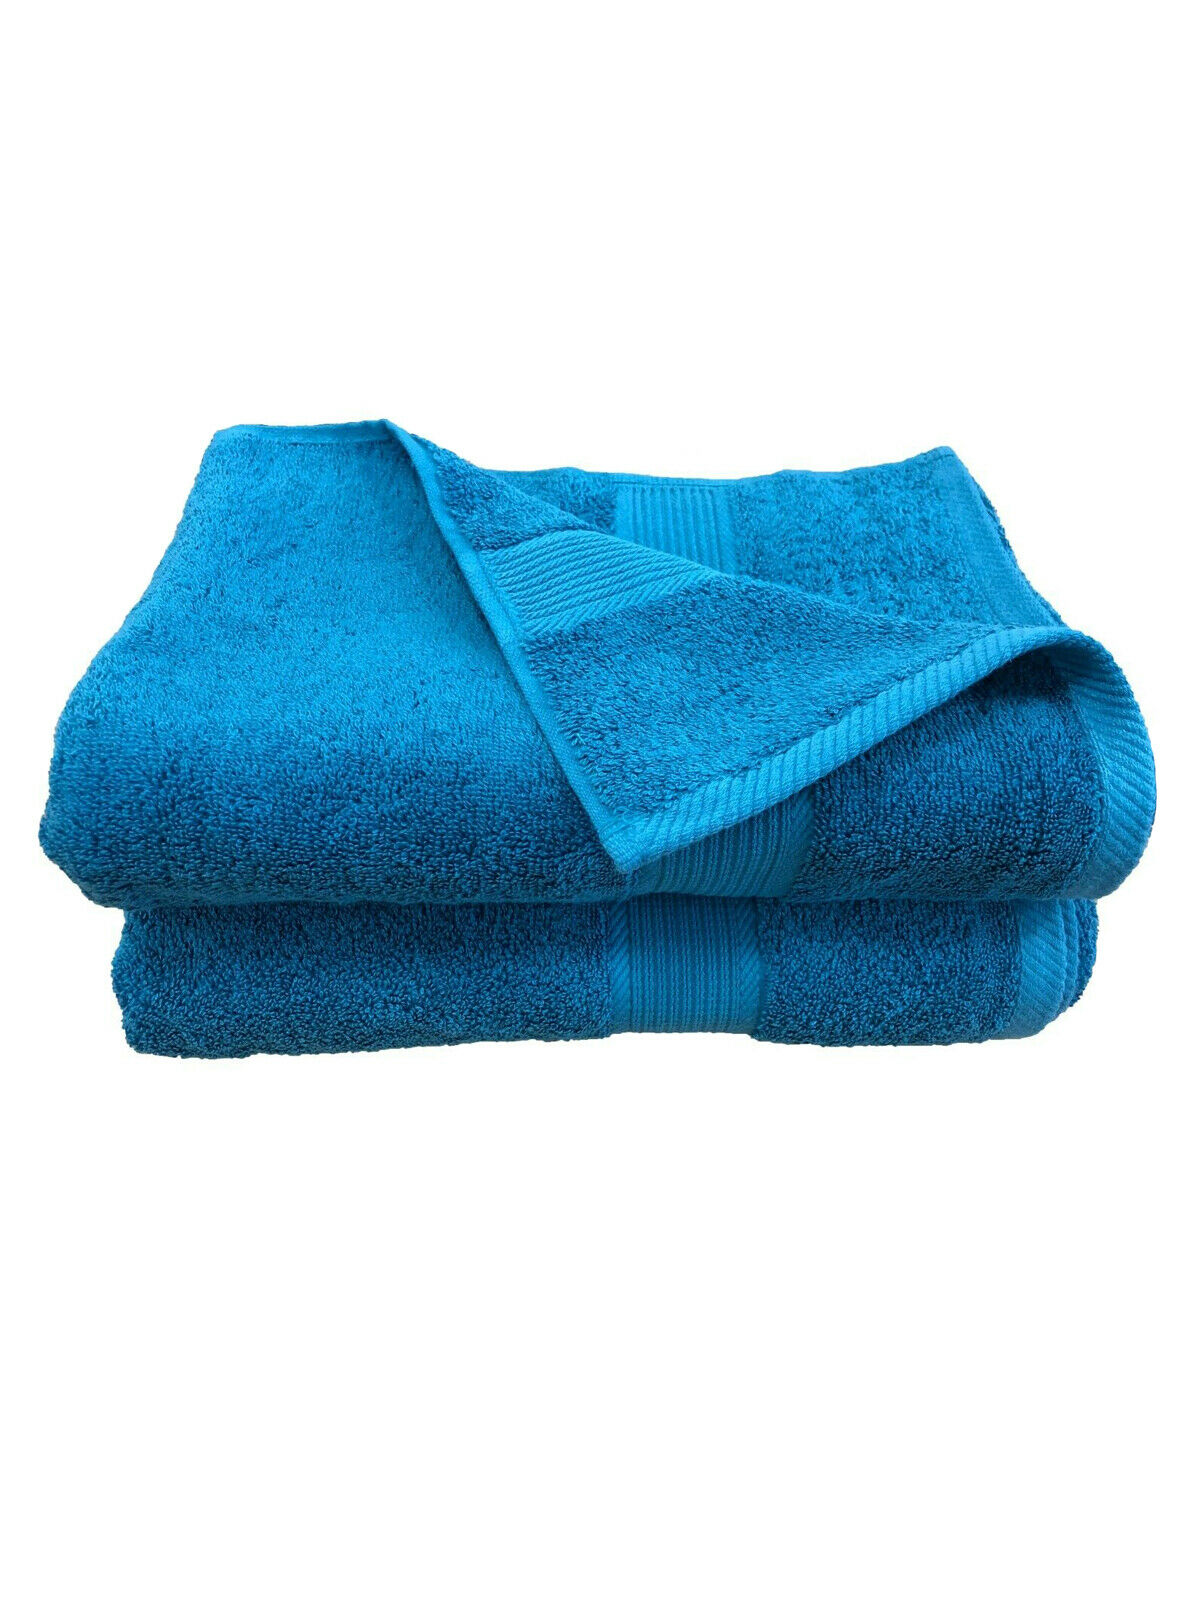 Pack of 4 Egyptian Cotton Bath Towel Luxury Super Soft Towel Combed Highly Absorbent Home Collection High Quality 500gsm Towel Set White